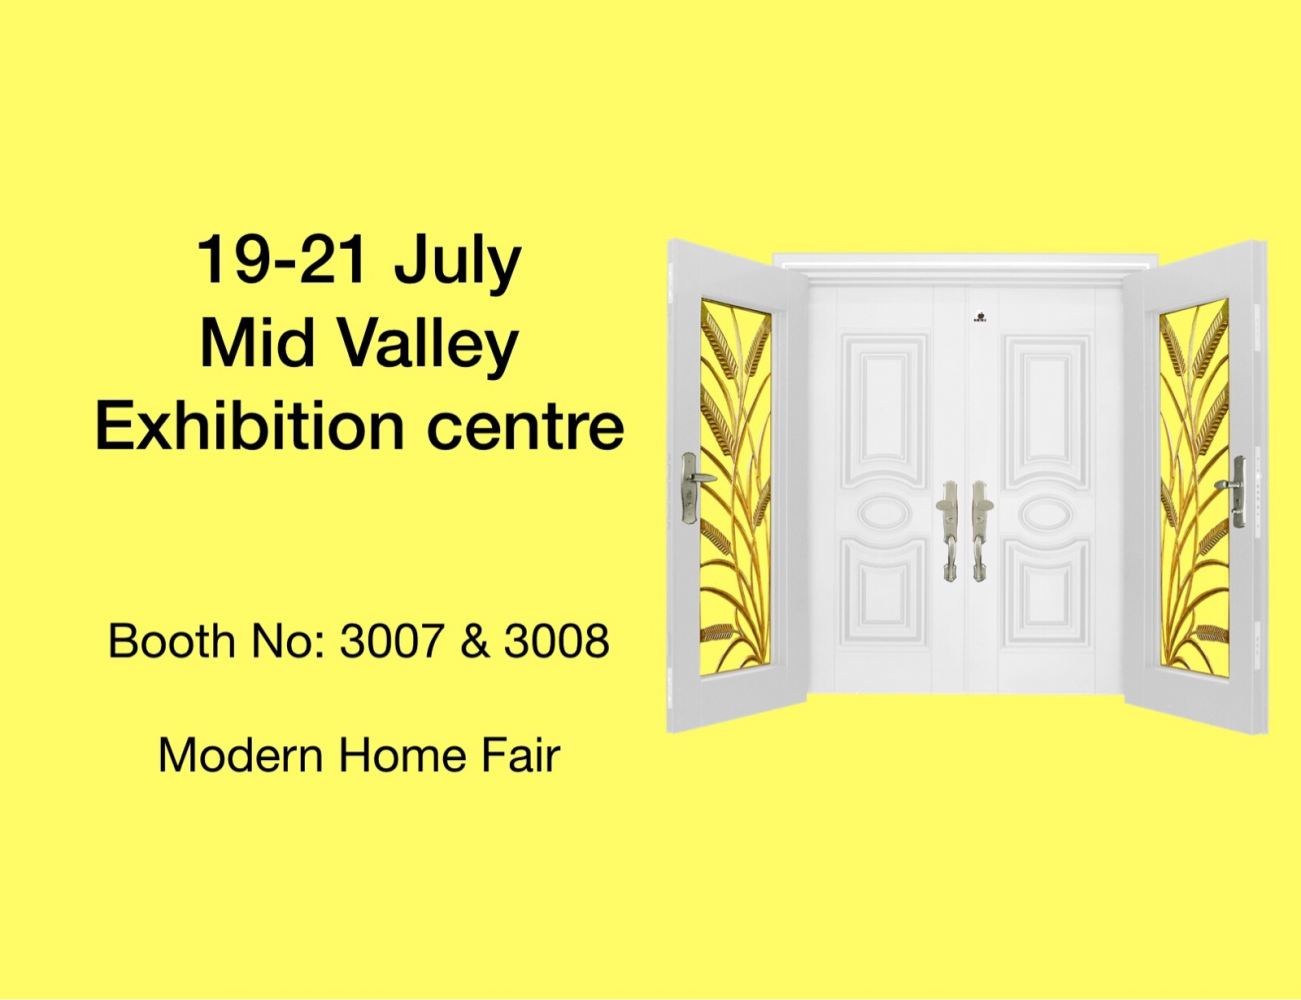 Exhibition At Mid Valley On 19th - 21th July 2019 (Modern Home)